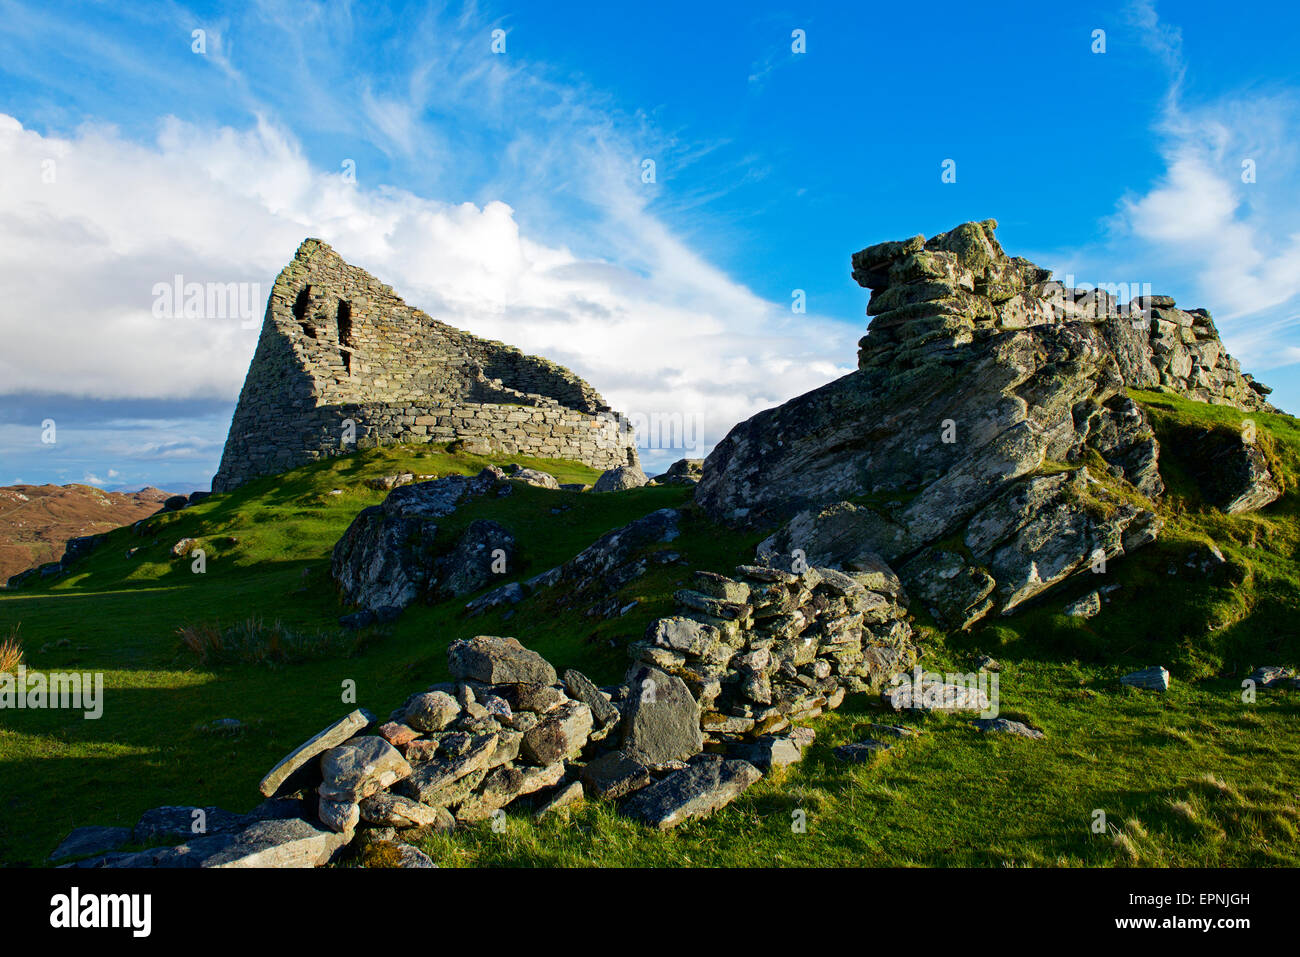 Dun Carloway Broch, Isle of Lewis, Outer Hebrides, Scotland UK - Stock Image